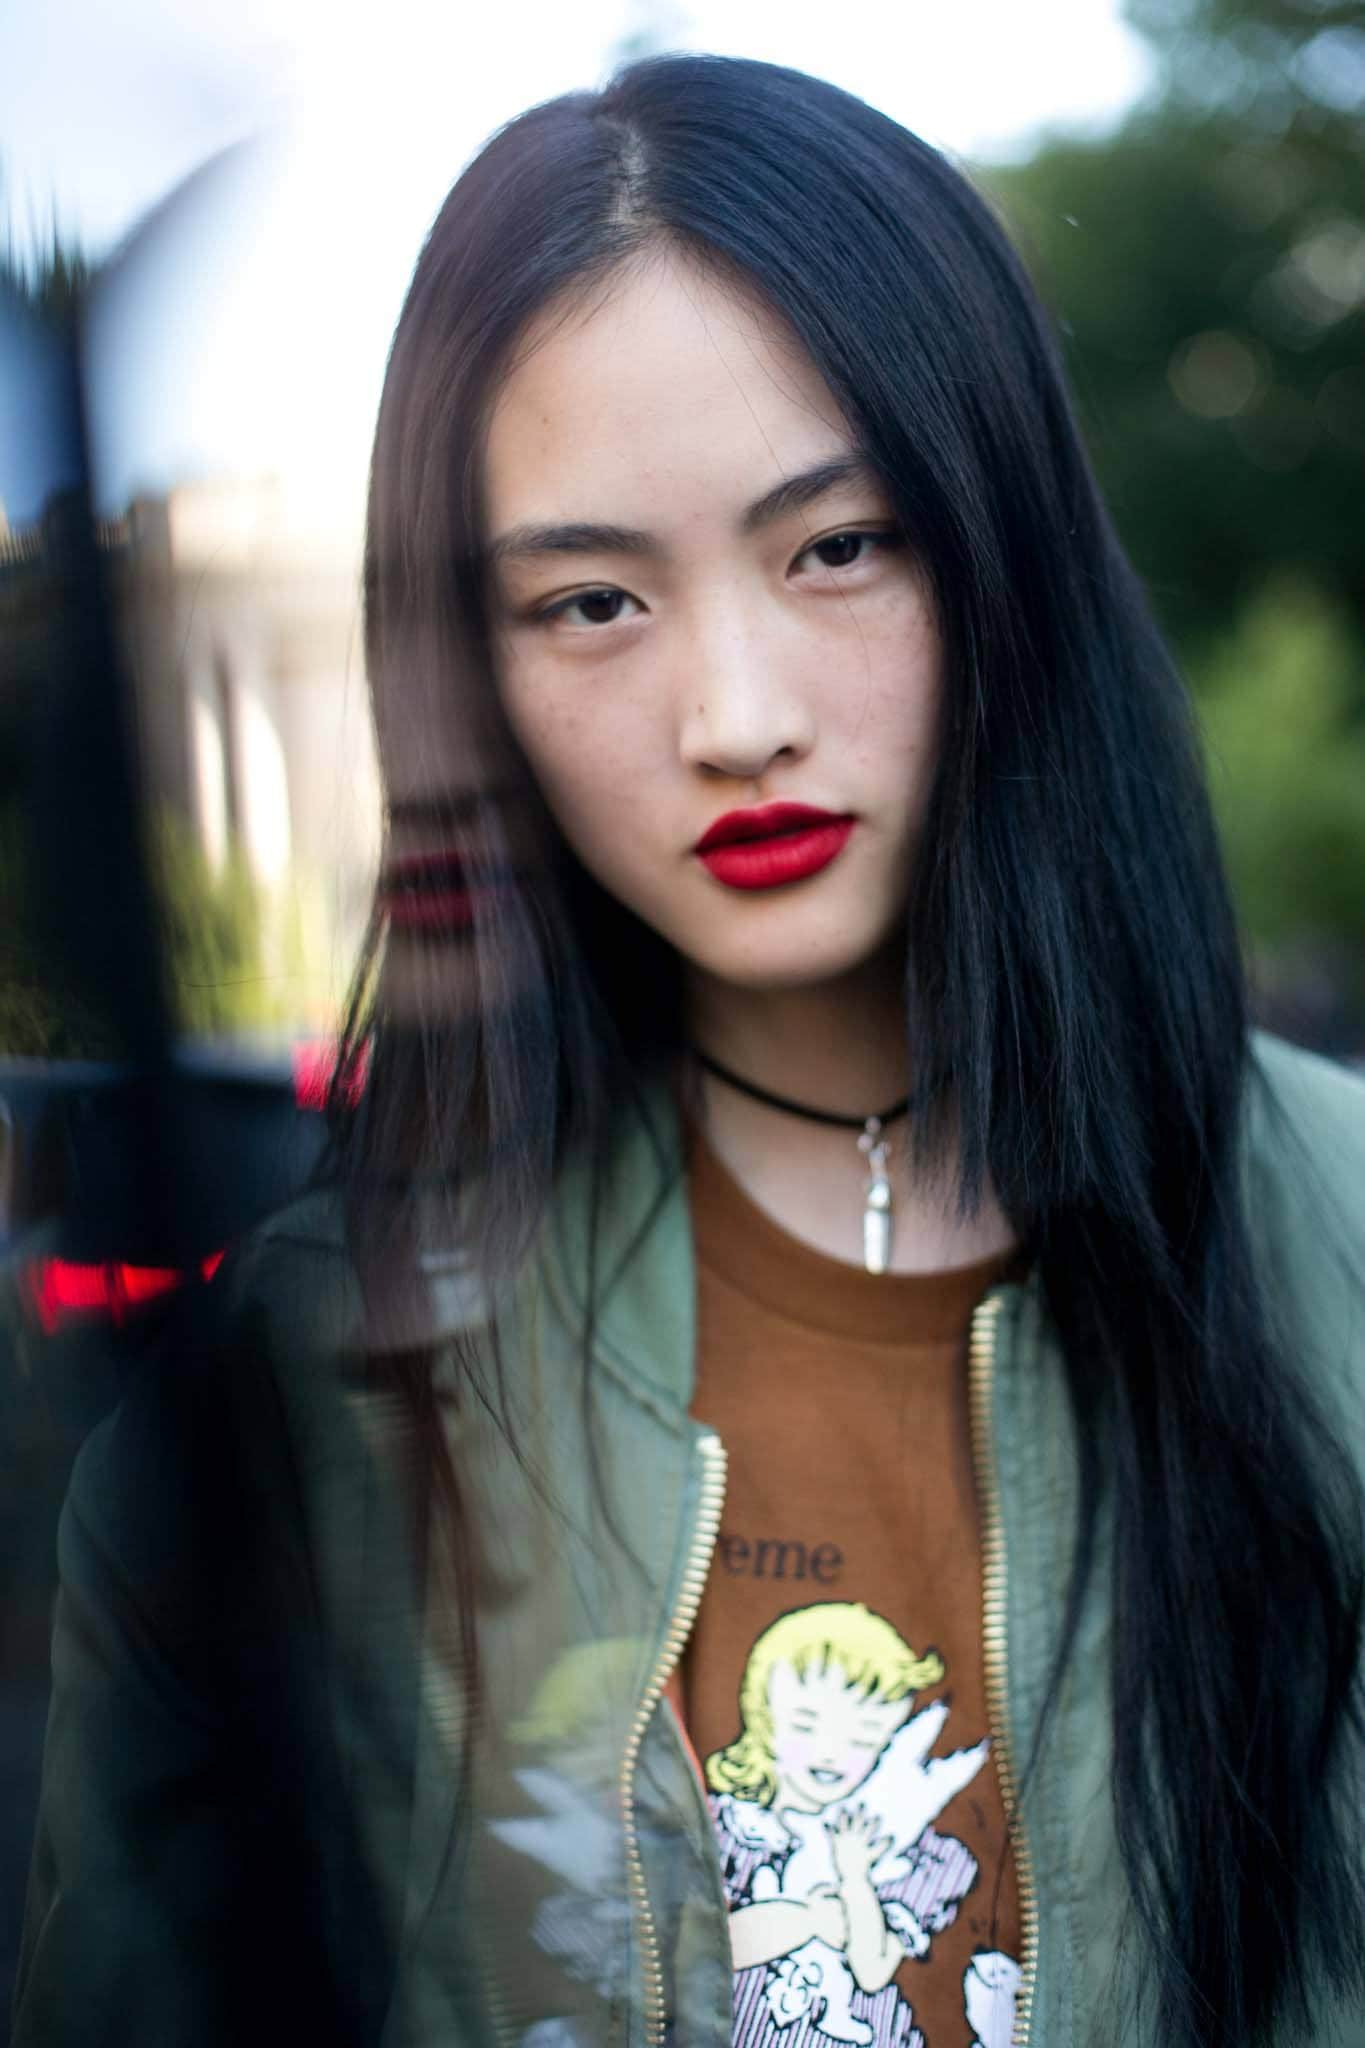 Winter Hues: 8 Dark Hair Color Ideas to Try This Season